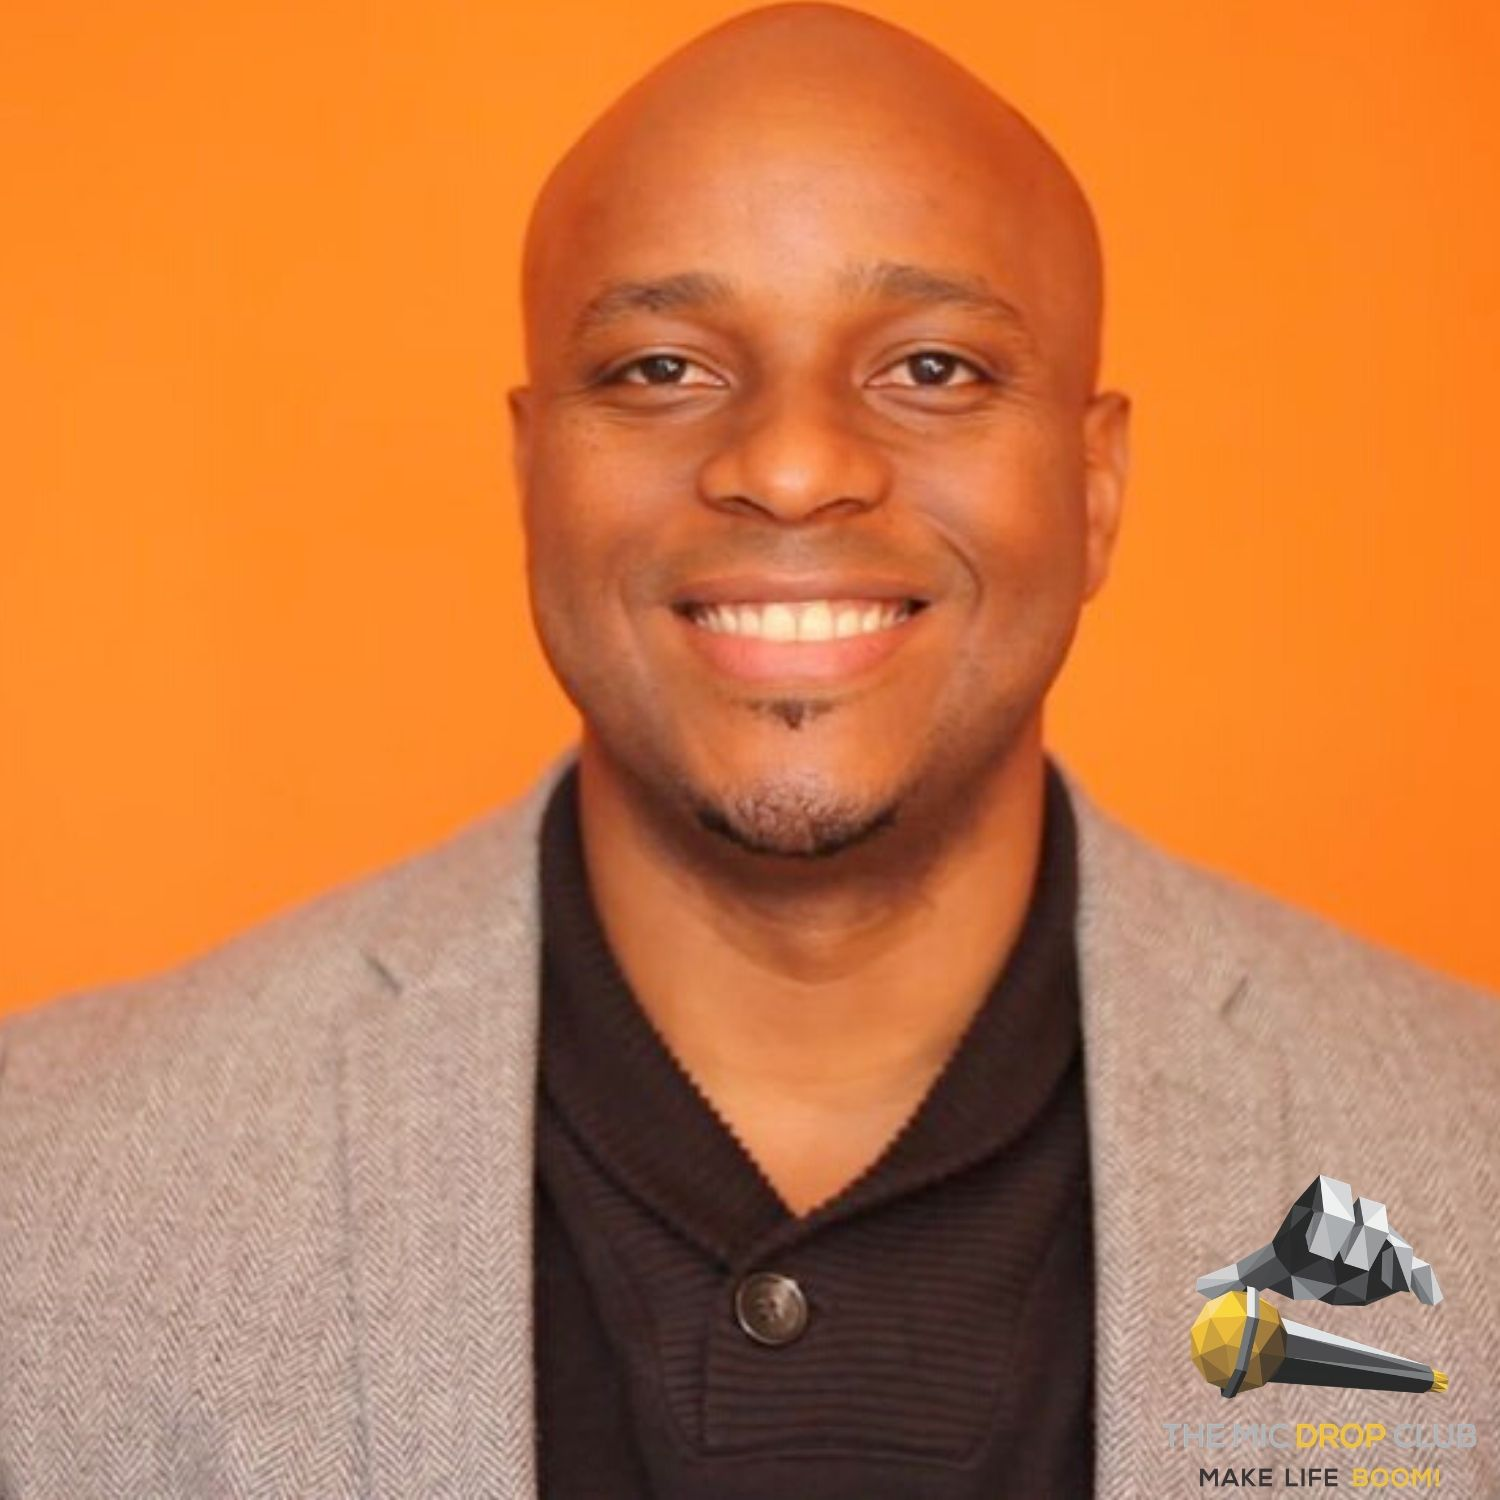 32. #32: Calvin Niles - Empowerment Coach Enabling Self-Actualisation Through Story Telling, Mindfulness and Heightened Awareness